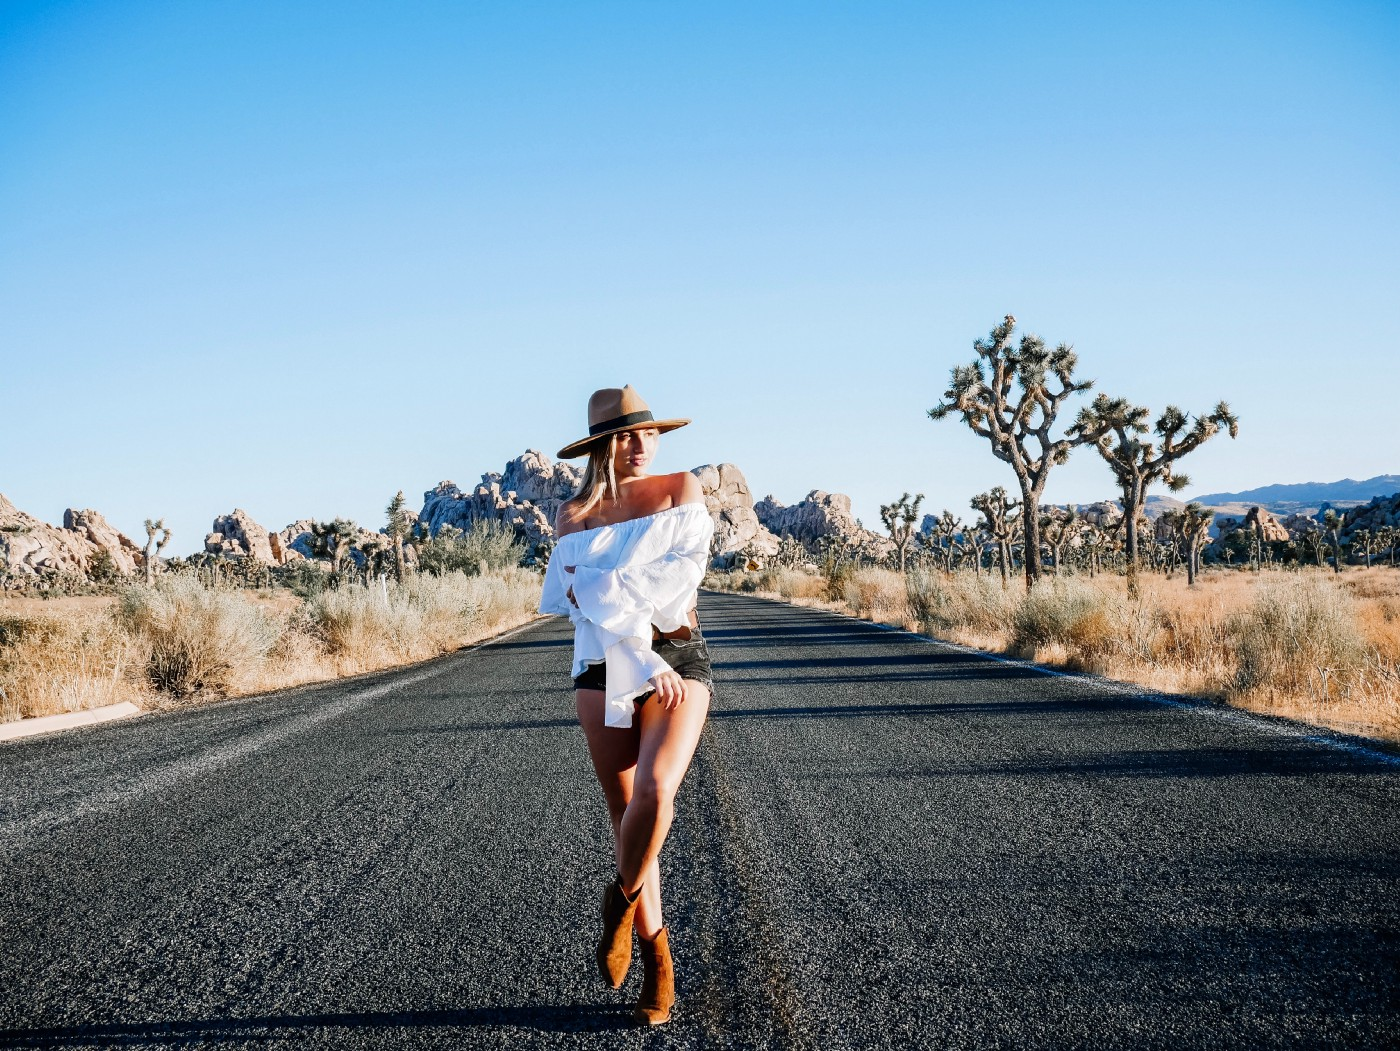 White woman in white shoulderless top and shorts, brimmed hat and boots, standing in the middle of a road in Joshua Tree Park